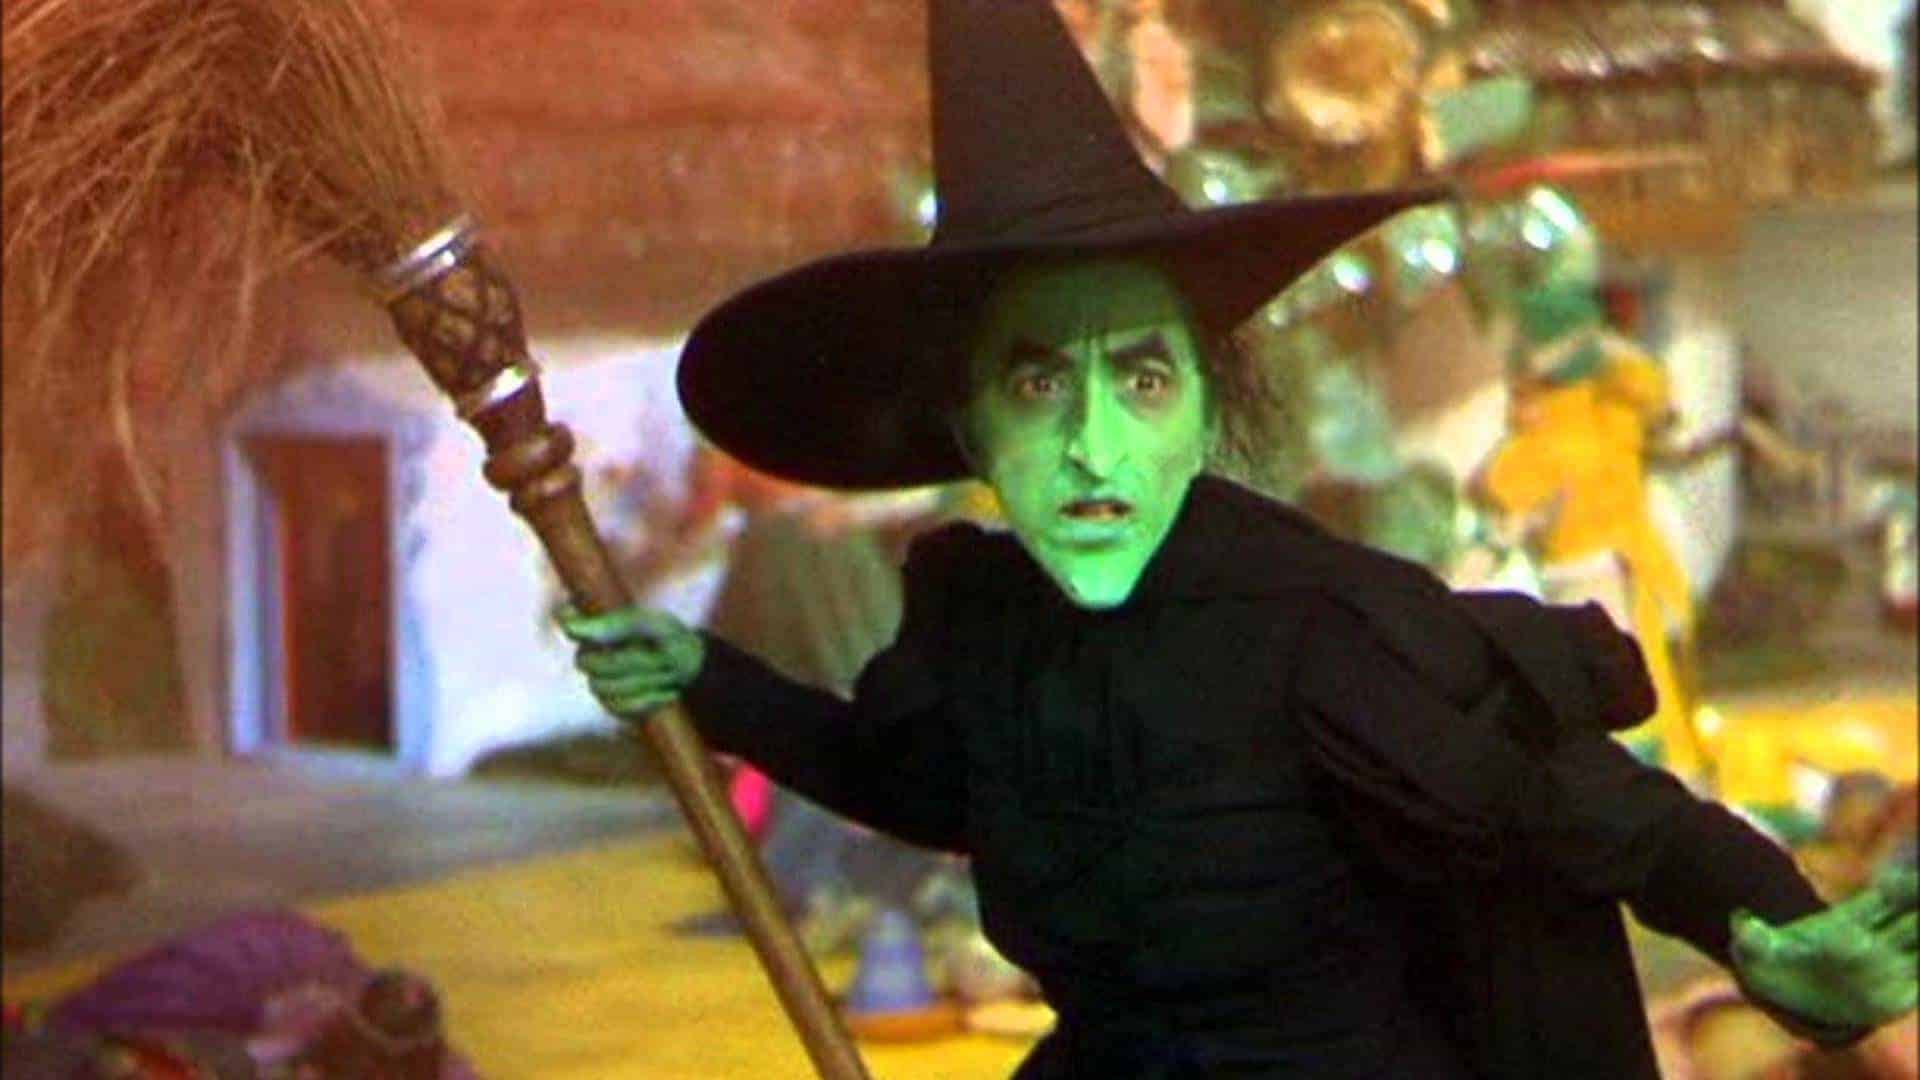 wicked witch of the west costume for Halloween